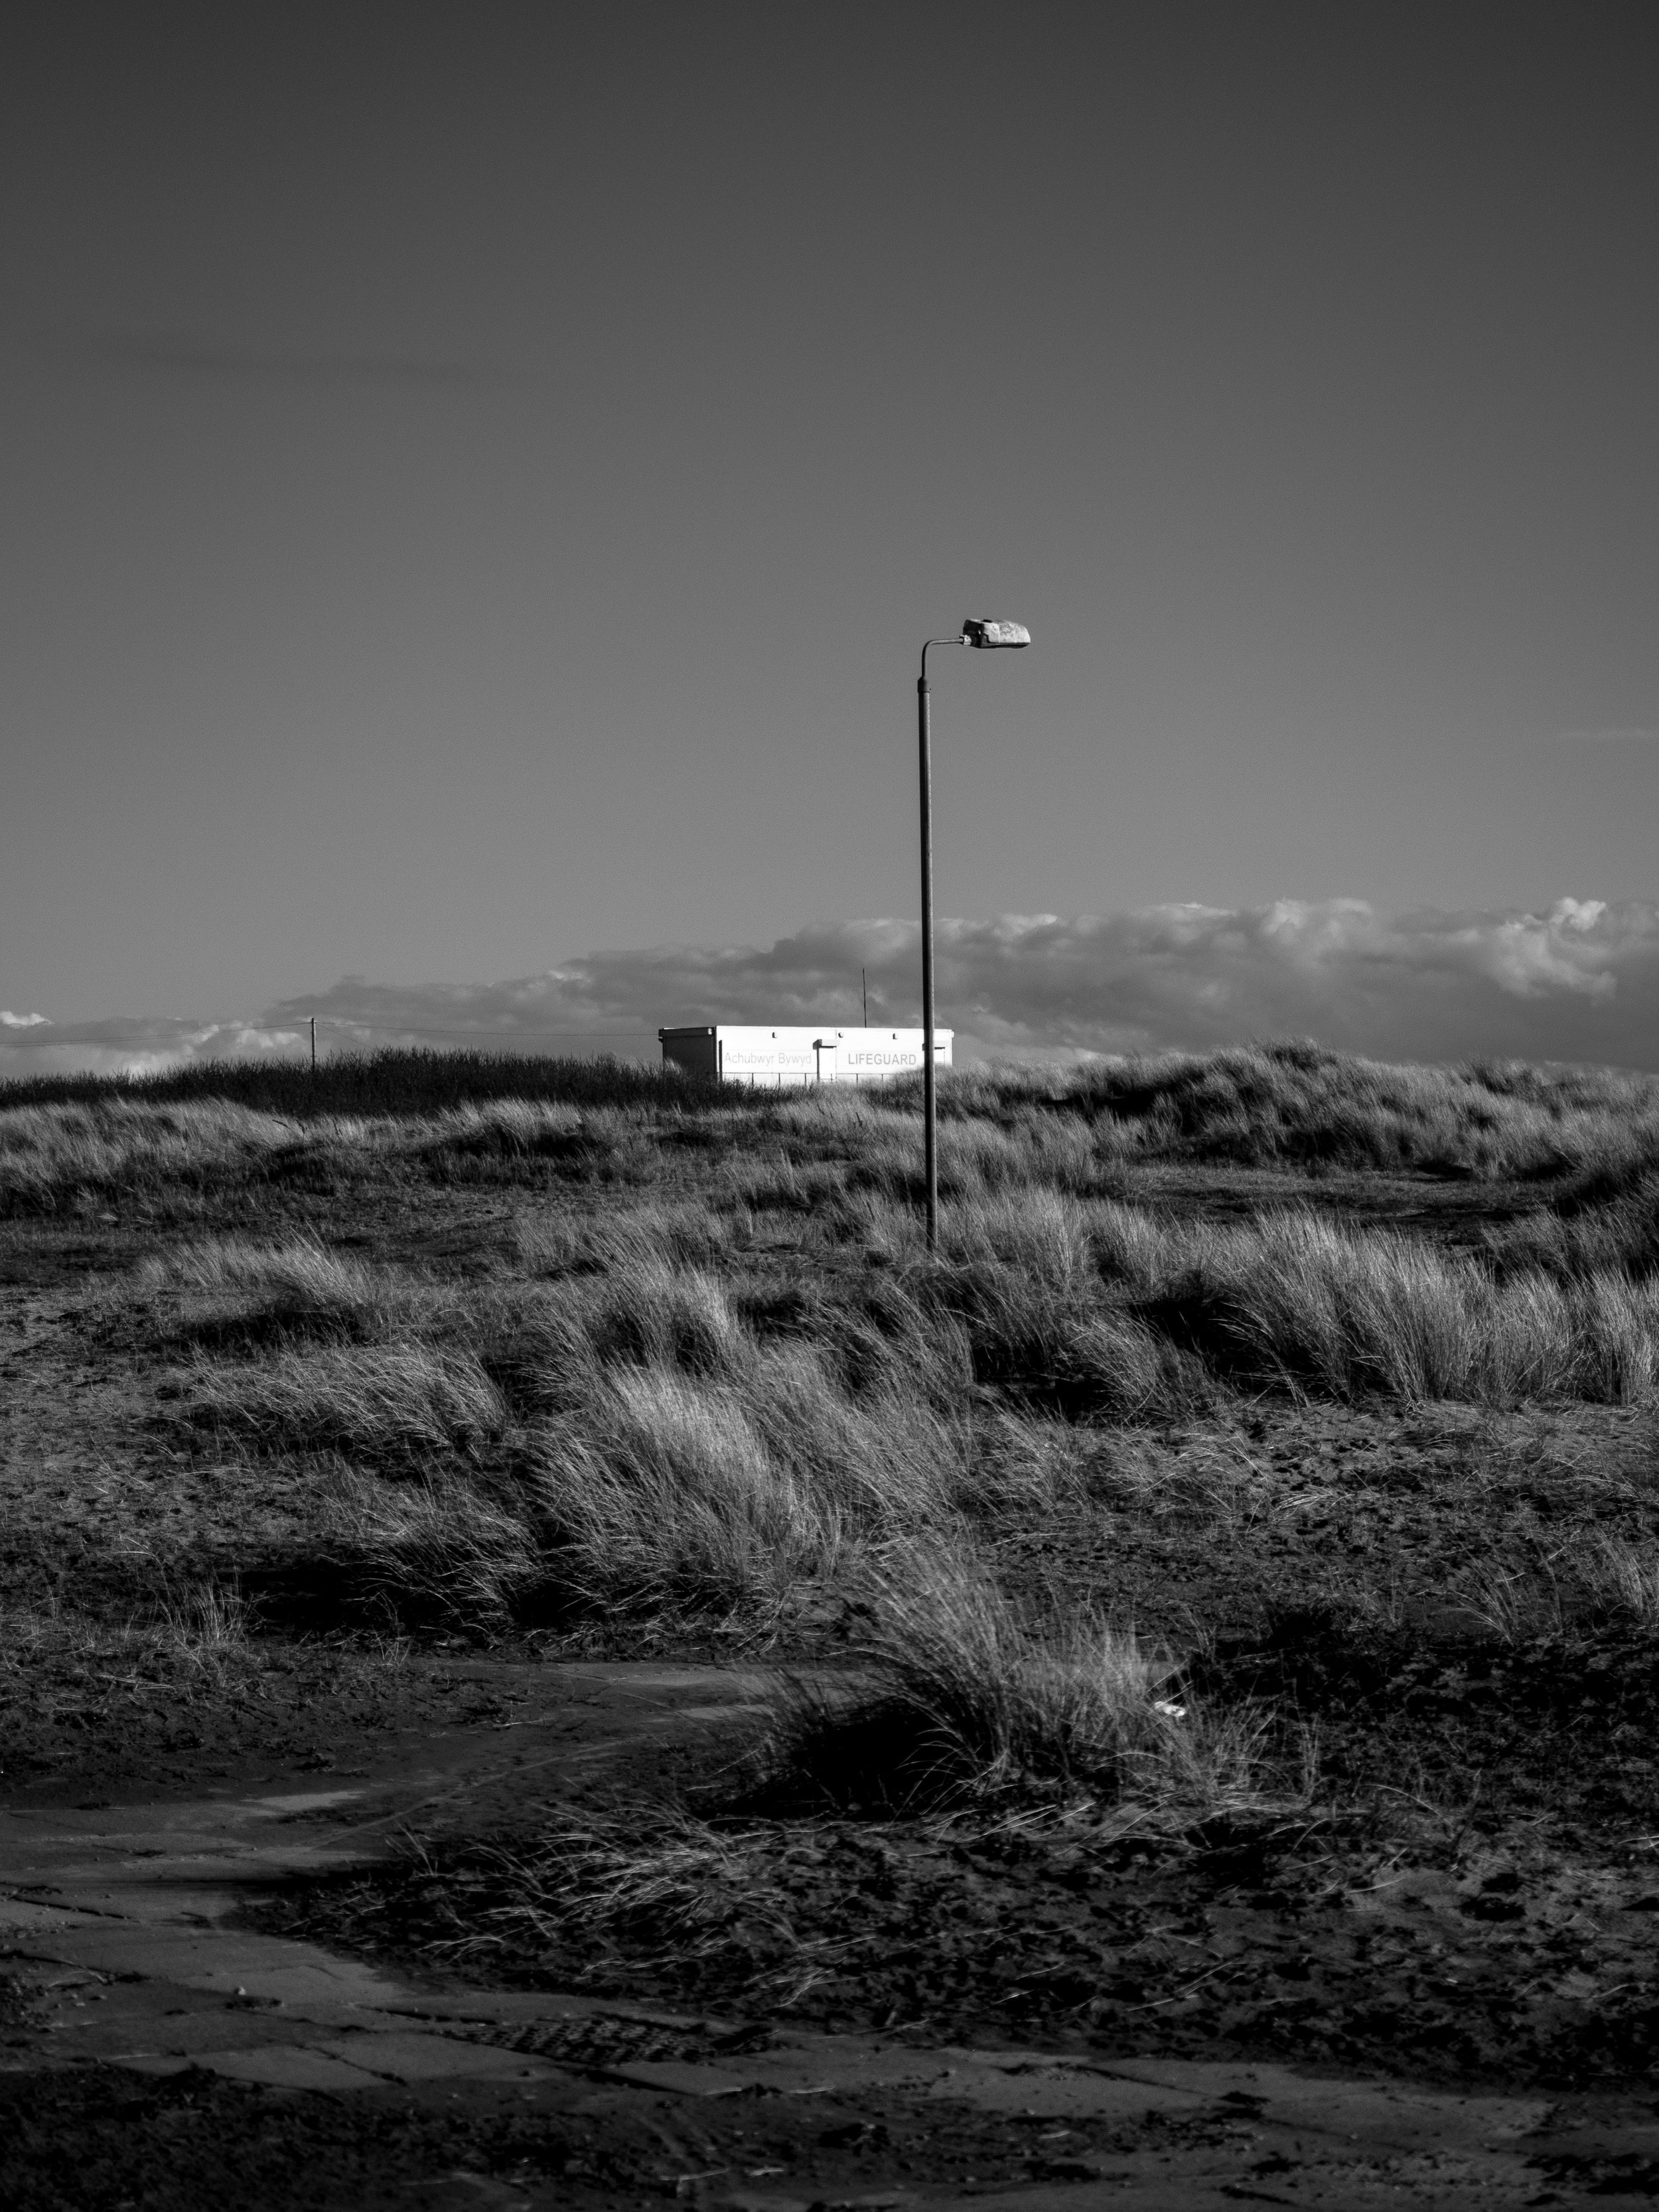 The Lonely Lamppost